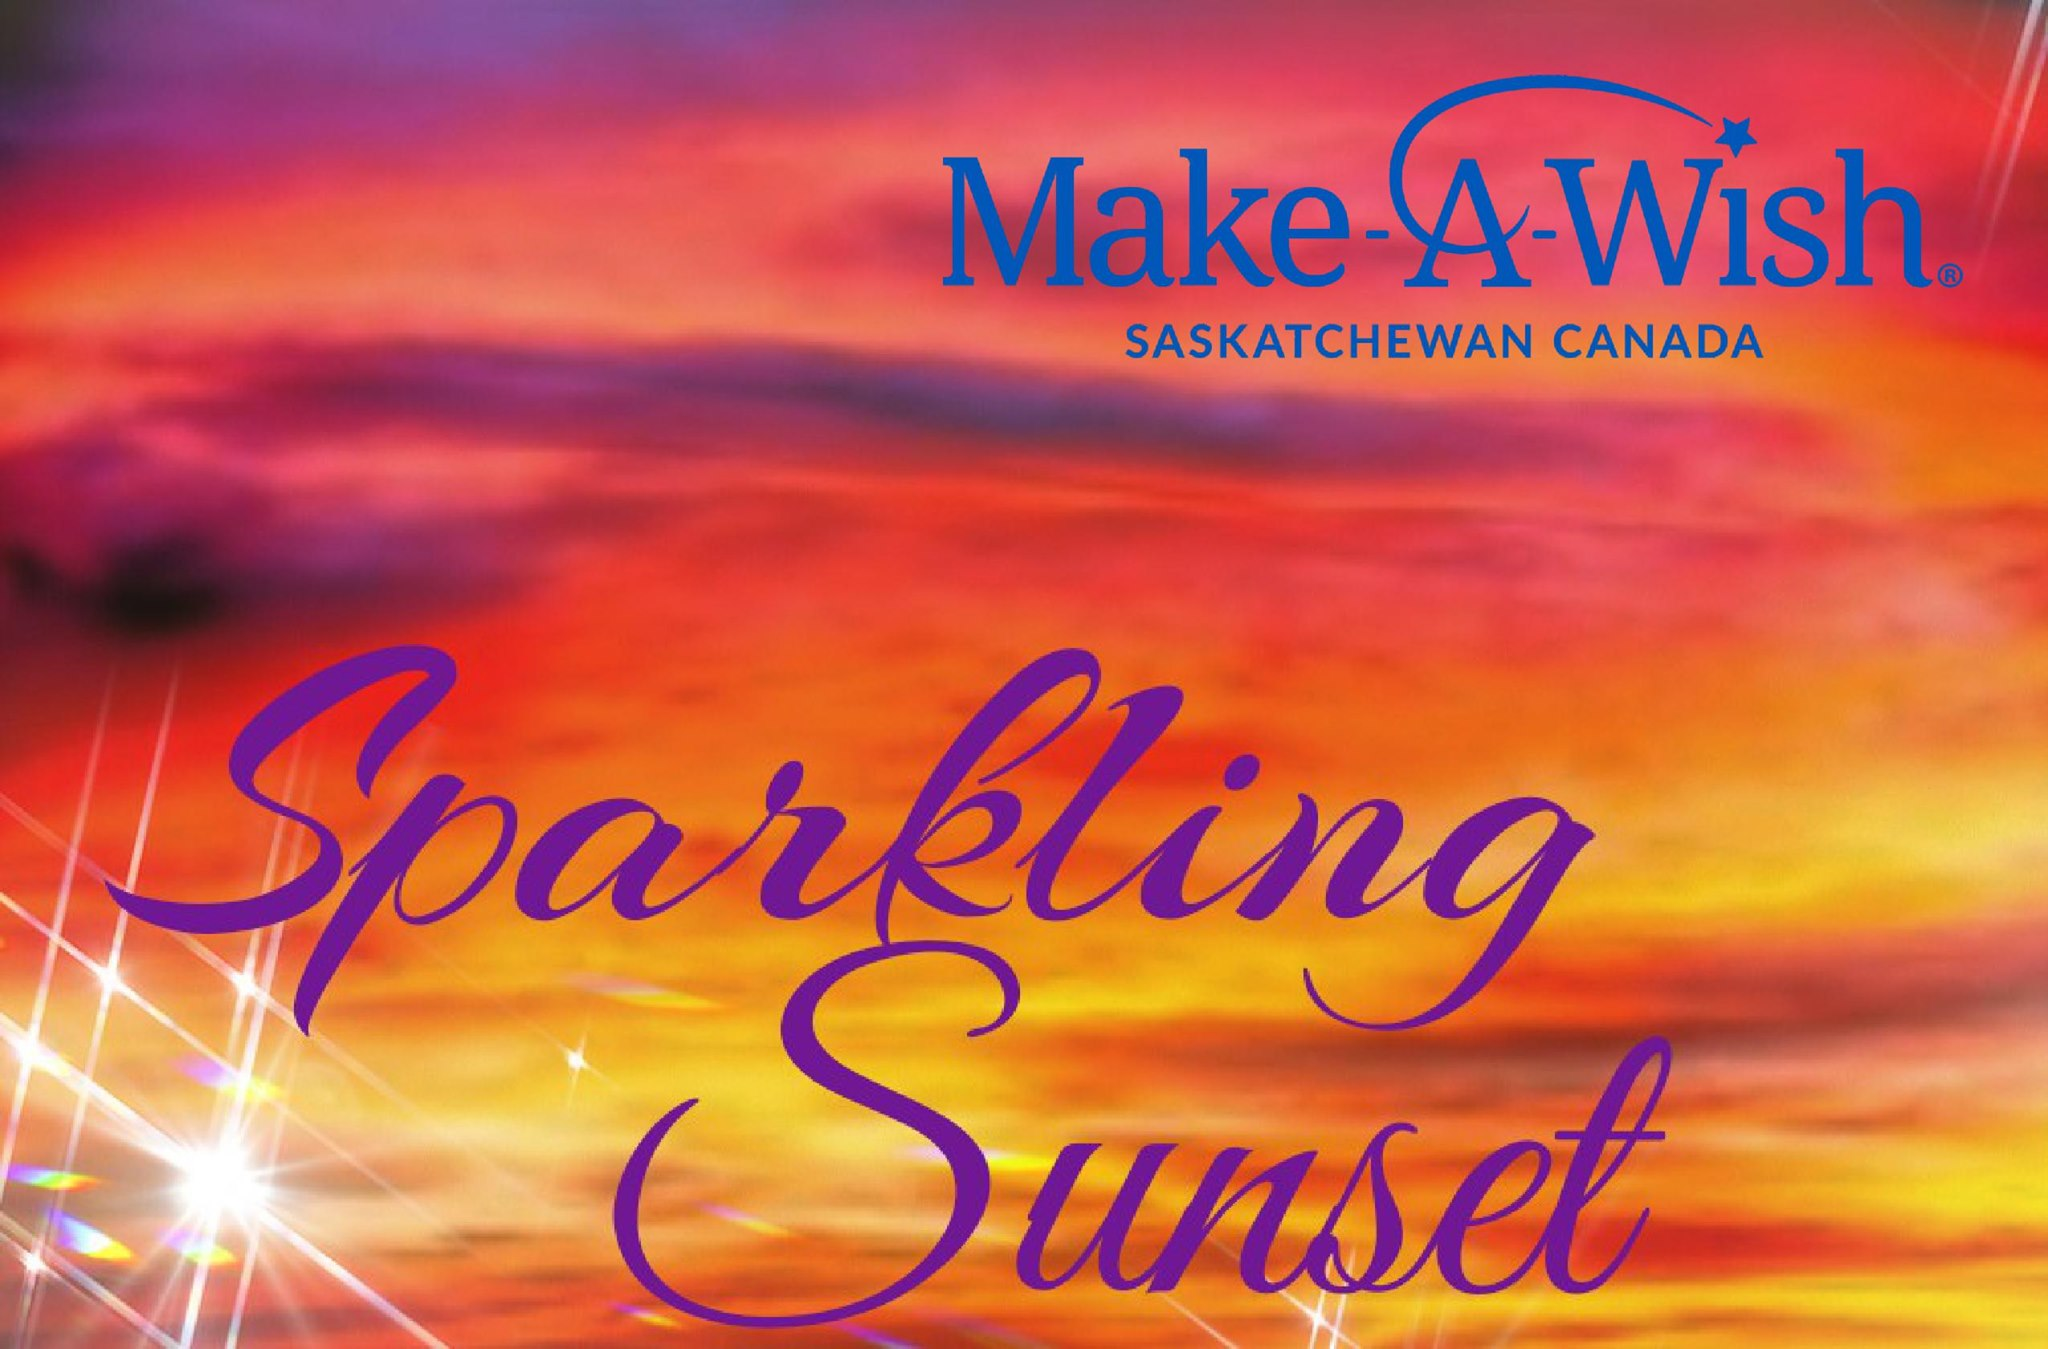 """Moose Jaw Temple Gardens Hotel and Spa and enLeigh Designs are proud to present Sparkling Sunset in support of Make-A-Wish Saskatchewan. Join us Friday, September 20th, 2019 for an evening of wonderful wishes, soulful sounds, and delectable desserts. Our evening begins at 6pm with cocktail hour followed at 7pm with supper and then an array of amazing desserts to satisfy any sweet tooth. Browse our raffle items and prepare for the auction while you enjoy the musical offerings of local favorite Stadacona Soul.   Tickets are $65 per person or pick up our """"Take the elevator home"""" package and receive 2 tickets to Sparkling Sunset and a one night stay at the Temple Gardens Hotel for only $189.00  Have a group of friends that want a night out? Want to make it a corporate event? Tables of 8 are available for $500.  Tickets are limited so get your early to guarantee your spots."""